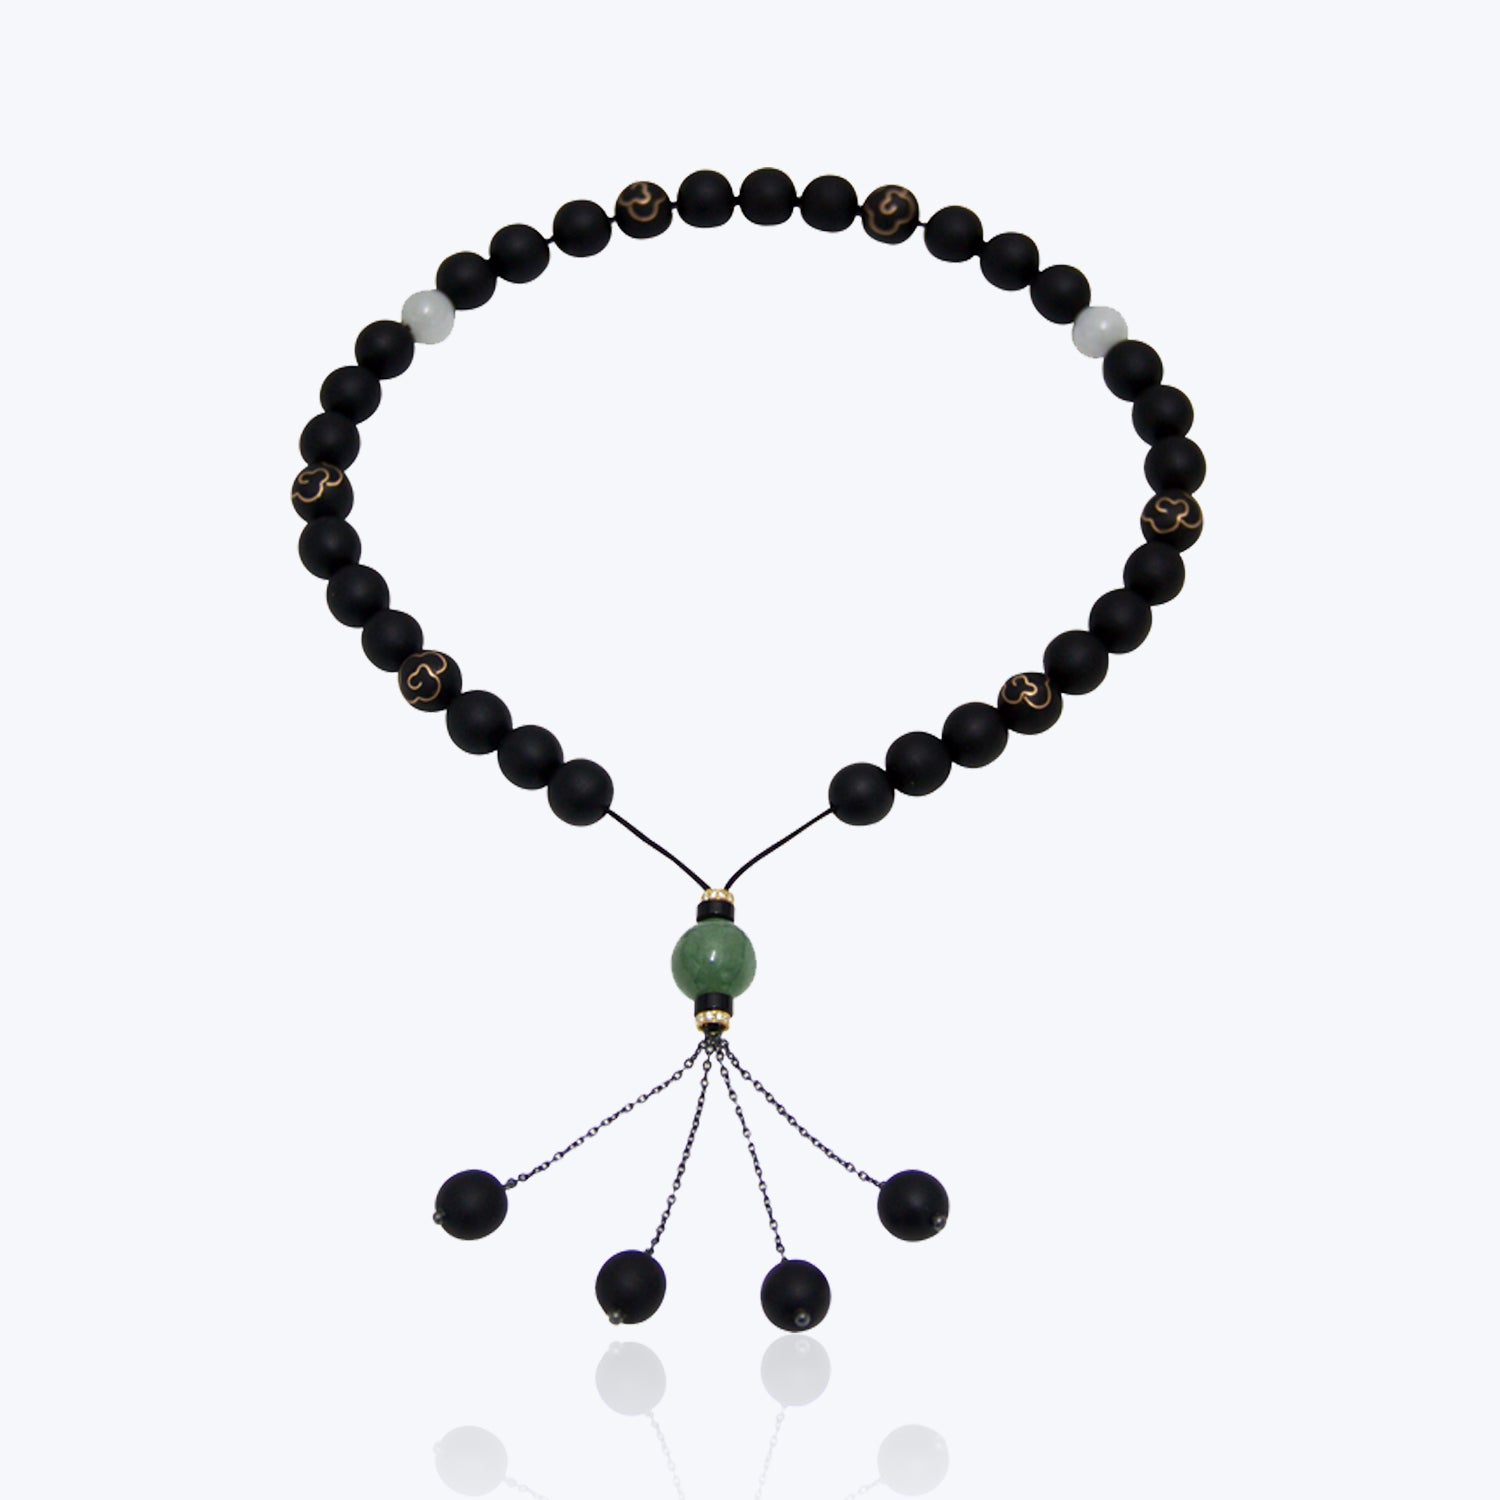 Tasbih with Black wood and 9K Inlaid Bead